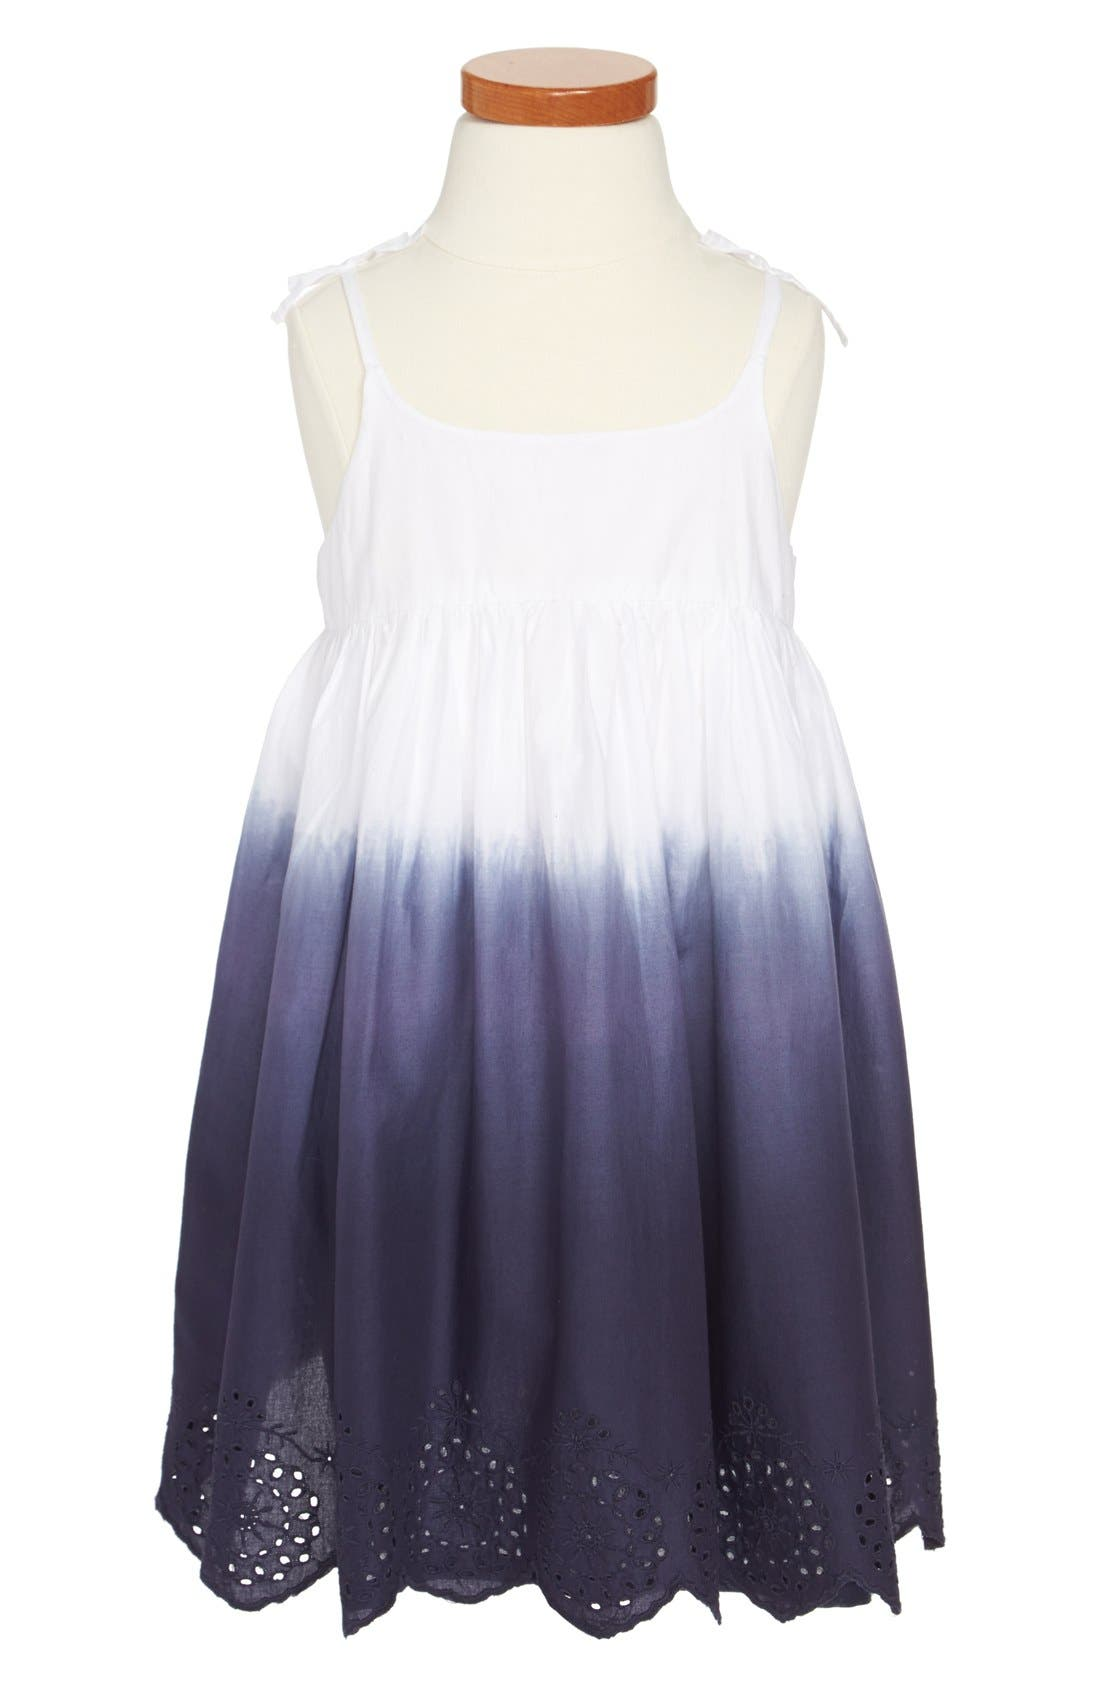 Main Image - Tucker + Tate 'Maya' Sleeveless Dress (Toddler Girls, Little Girls & Big Girls)